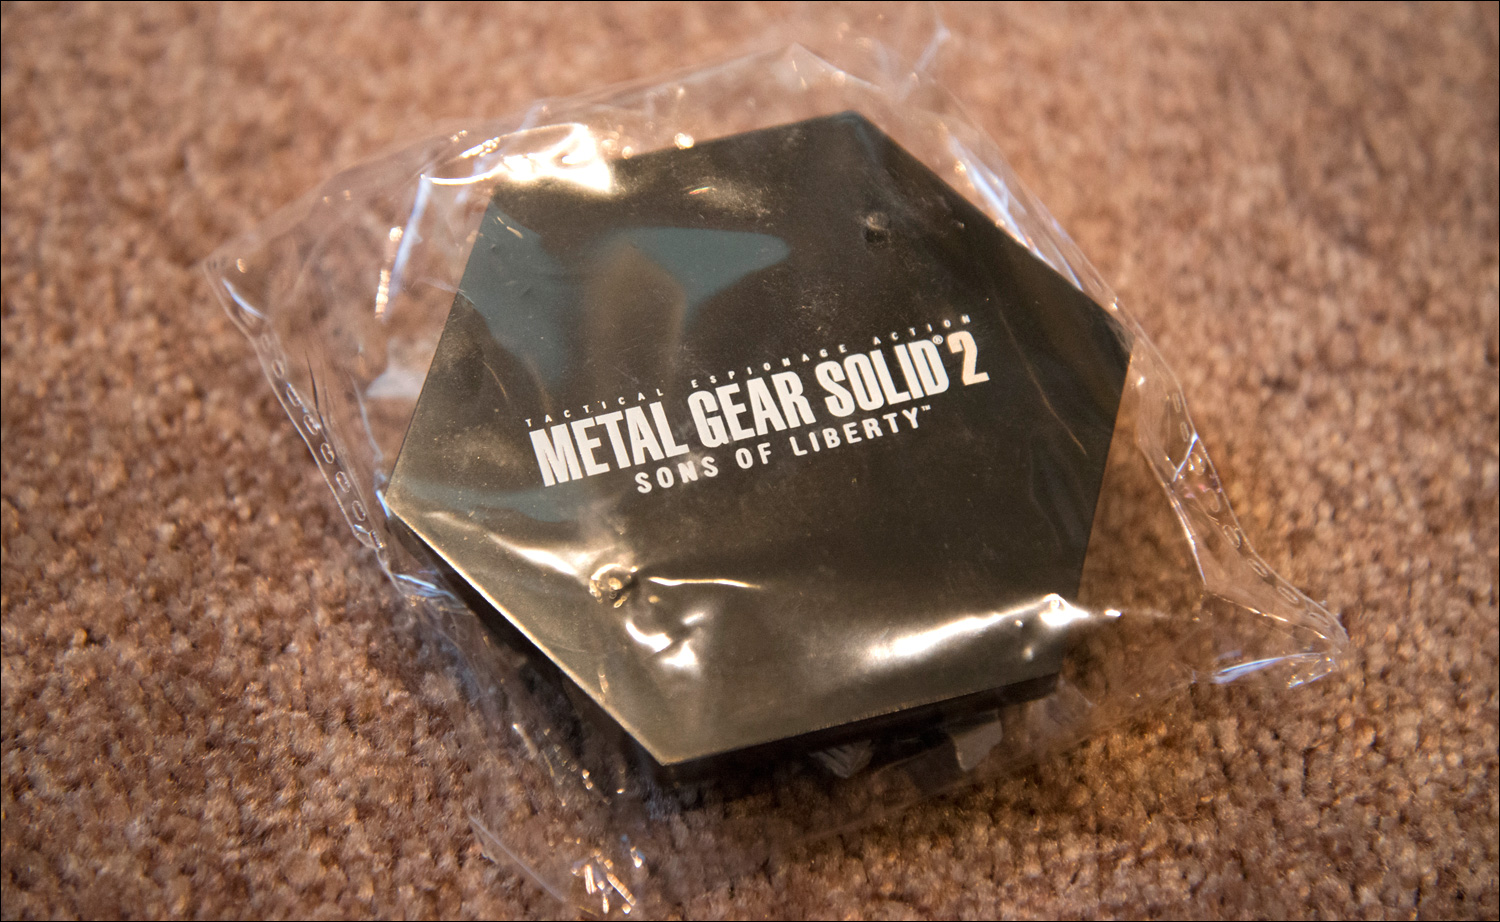 Metal-Gear-Solid-2-Sons-of-Liberty-Premium-Package-Snake-Figure-Pedestal